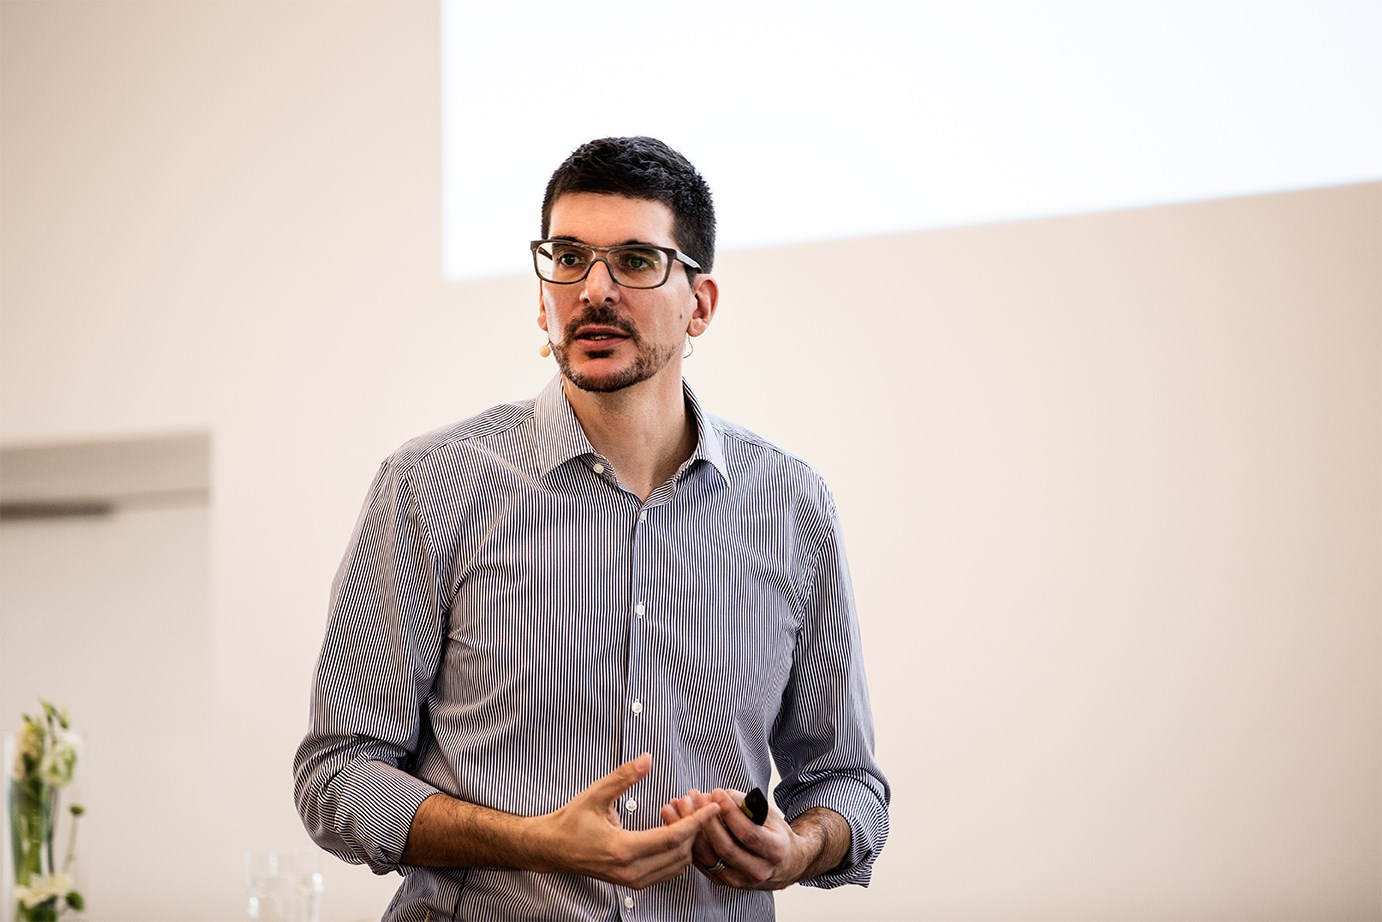 One of our heroes is innovative strategic expert Alexander Osterwalder